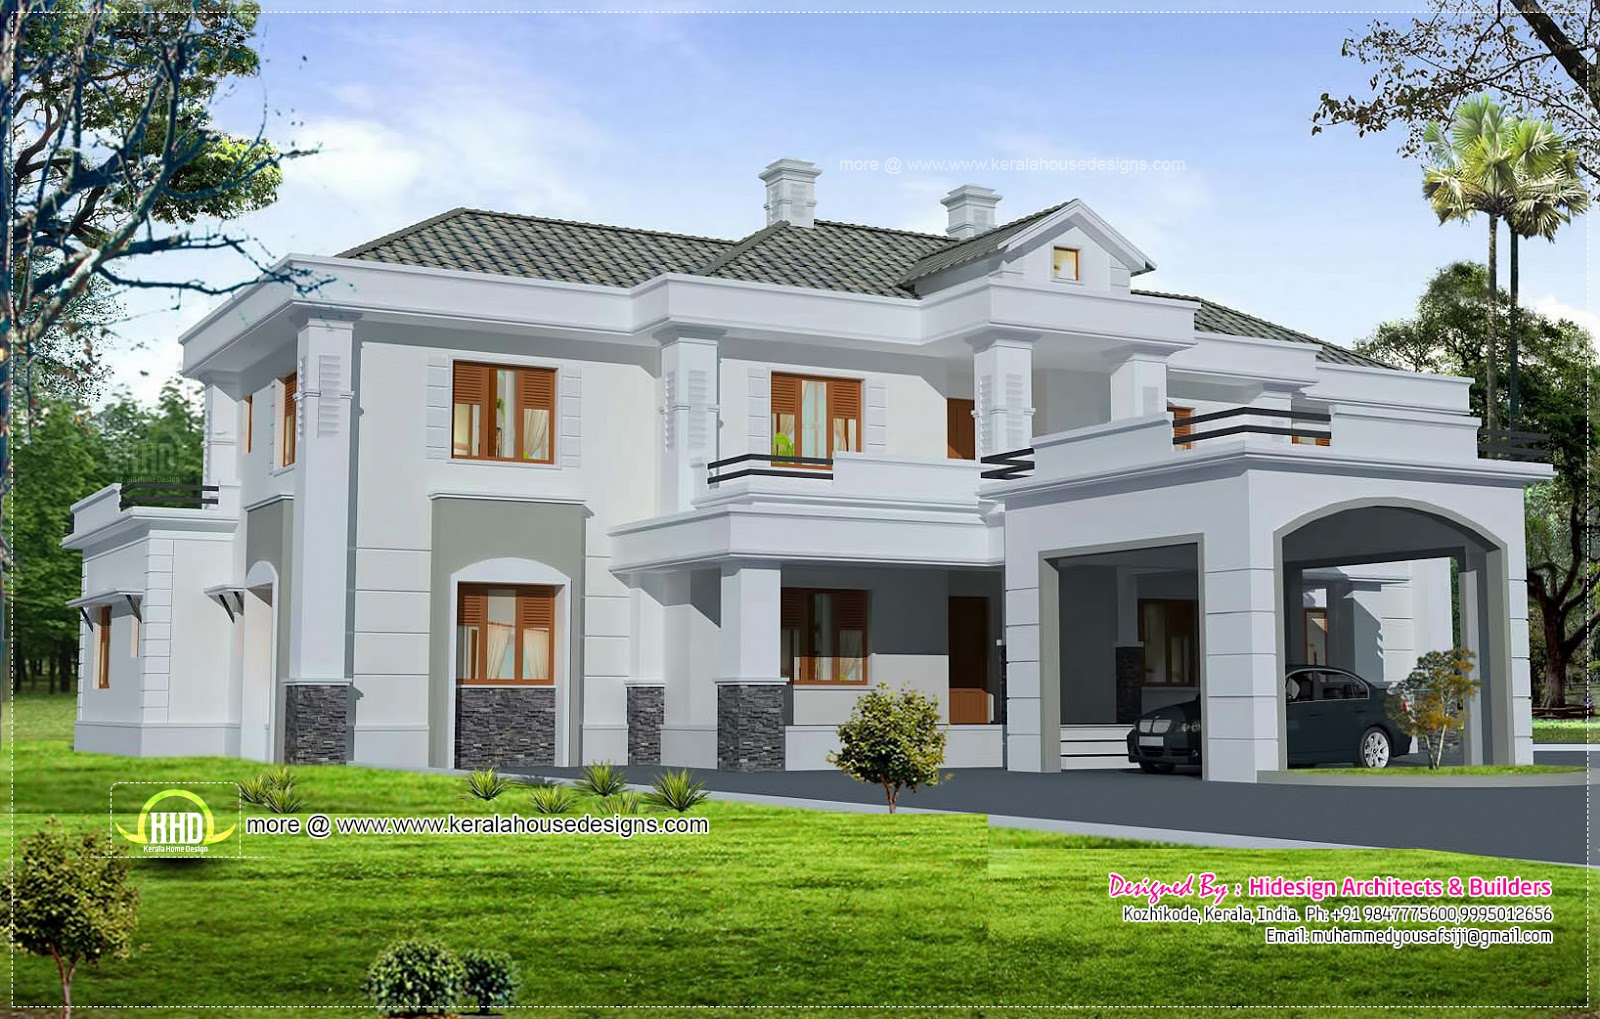 Luxury colonial style home design with court yard kerala for House plans colonial style homes